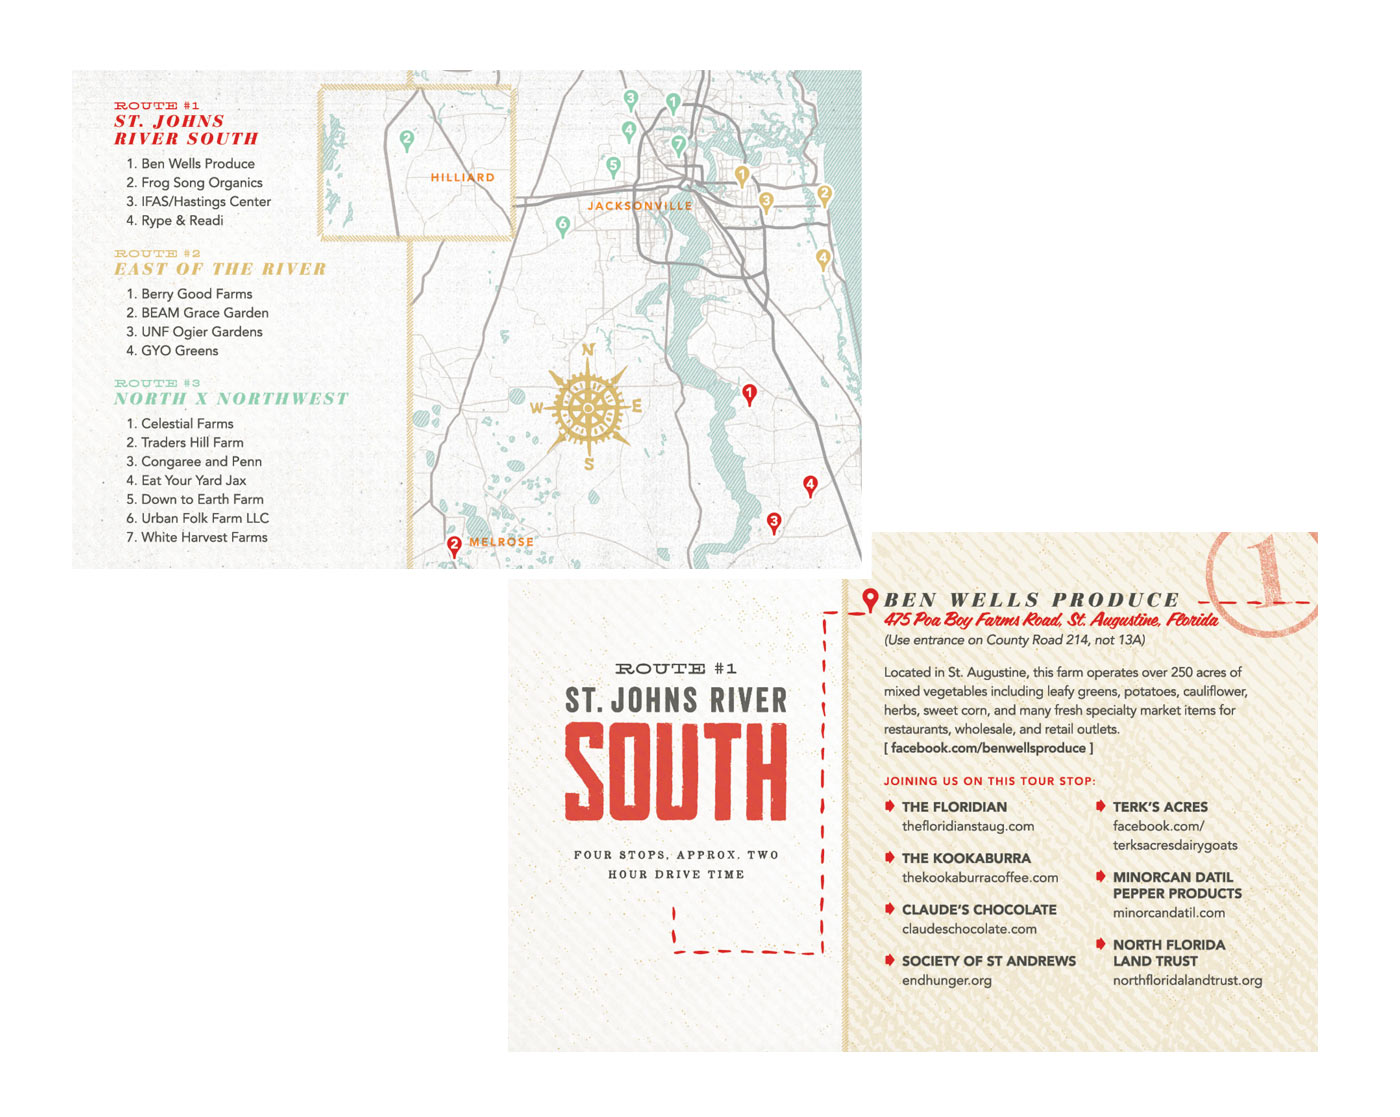 tour de farm by slow food first coast branded by brittany norris